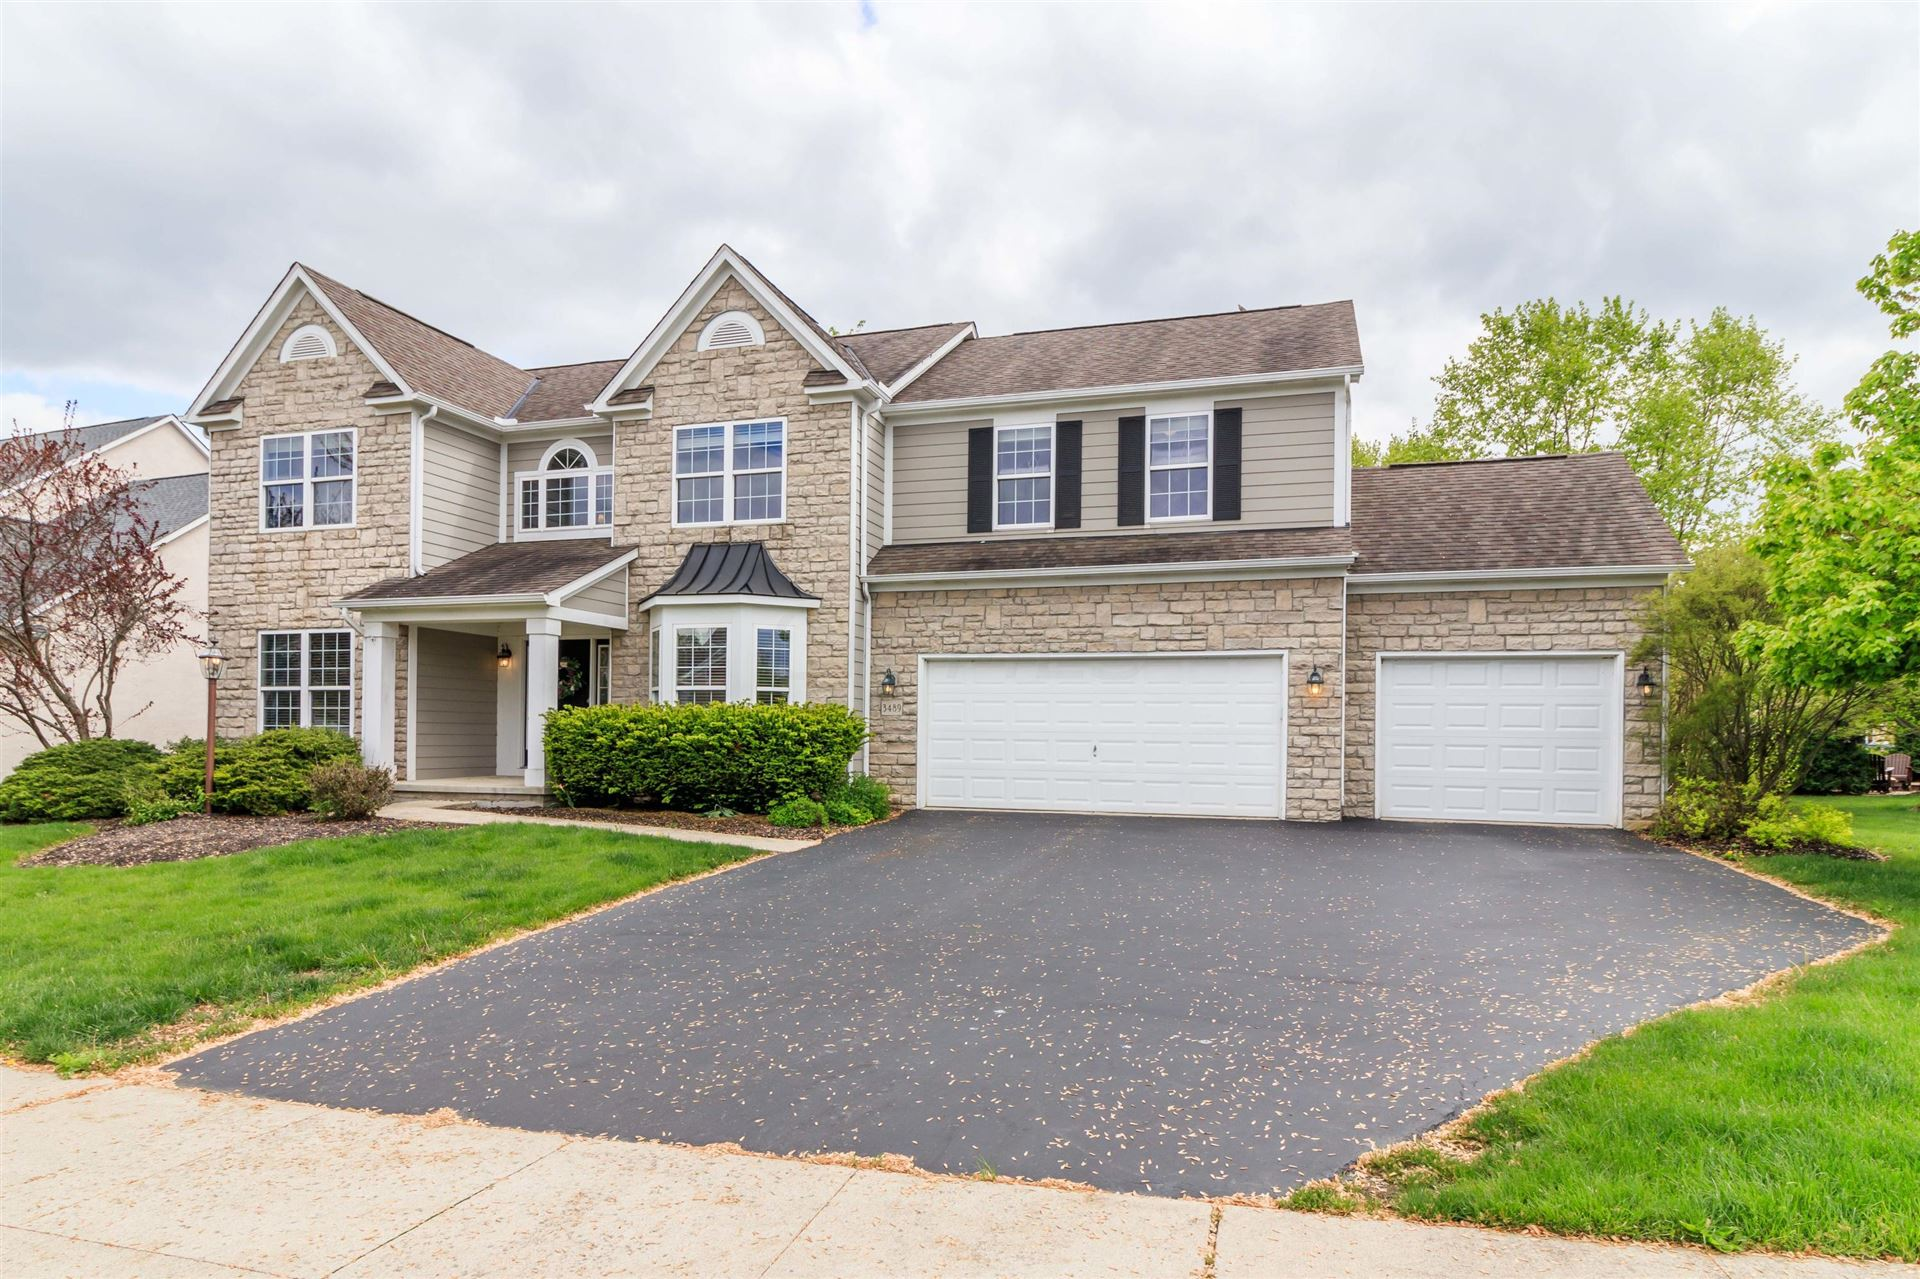 Photo of 3489 Windy Forest Lane, Powell, OH 43065 (MLS # 221014376)